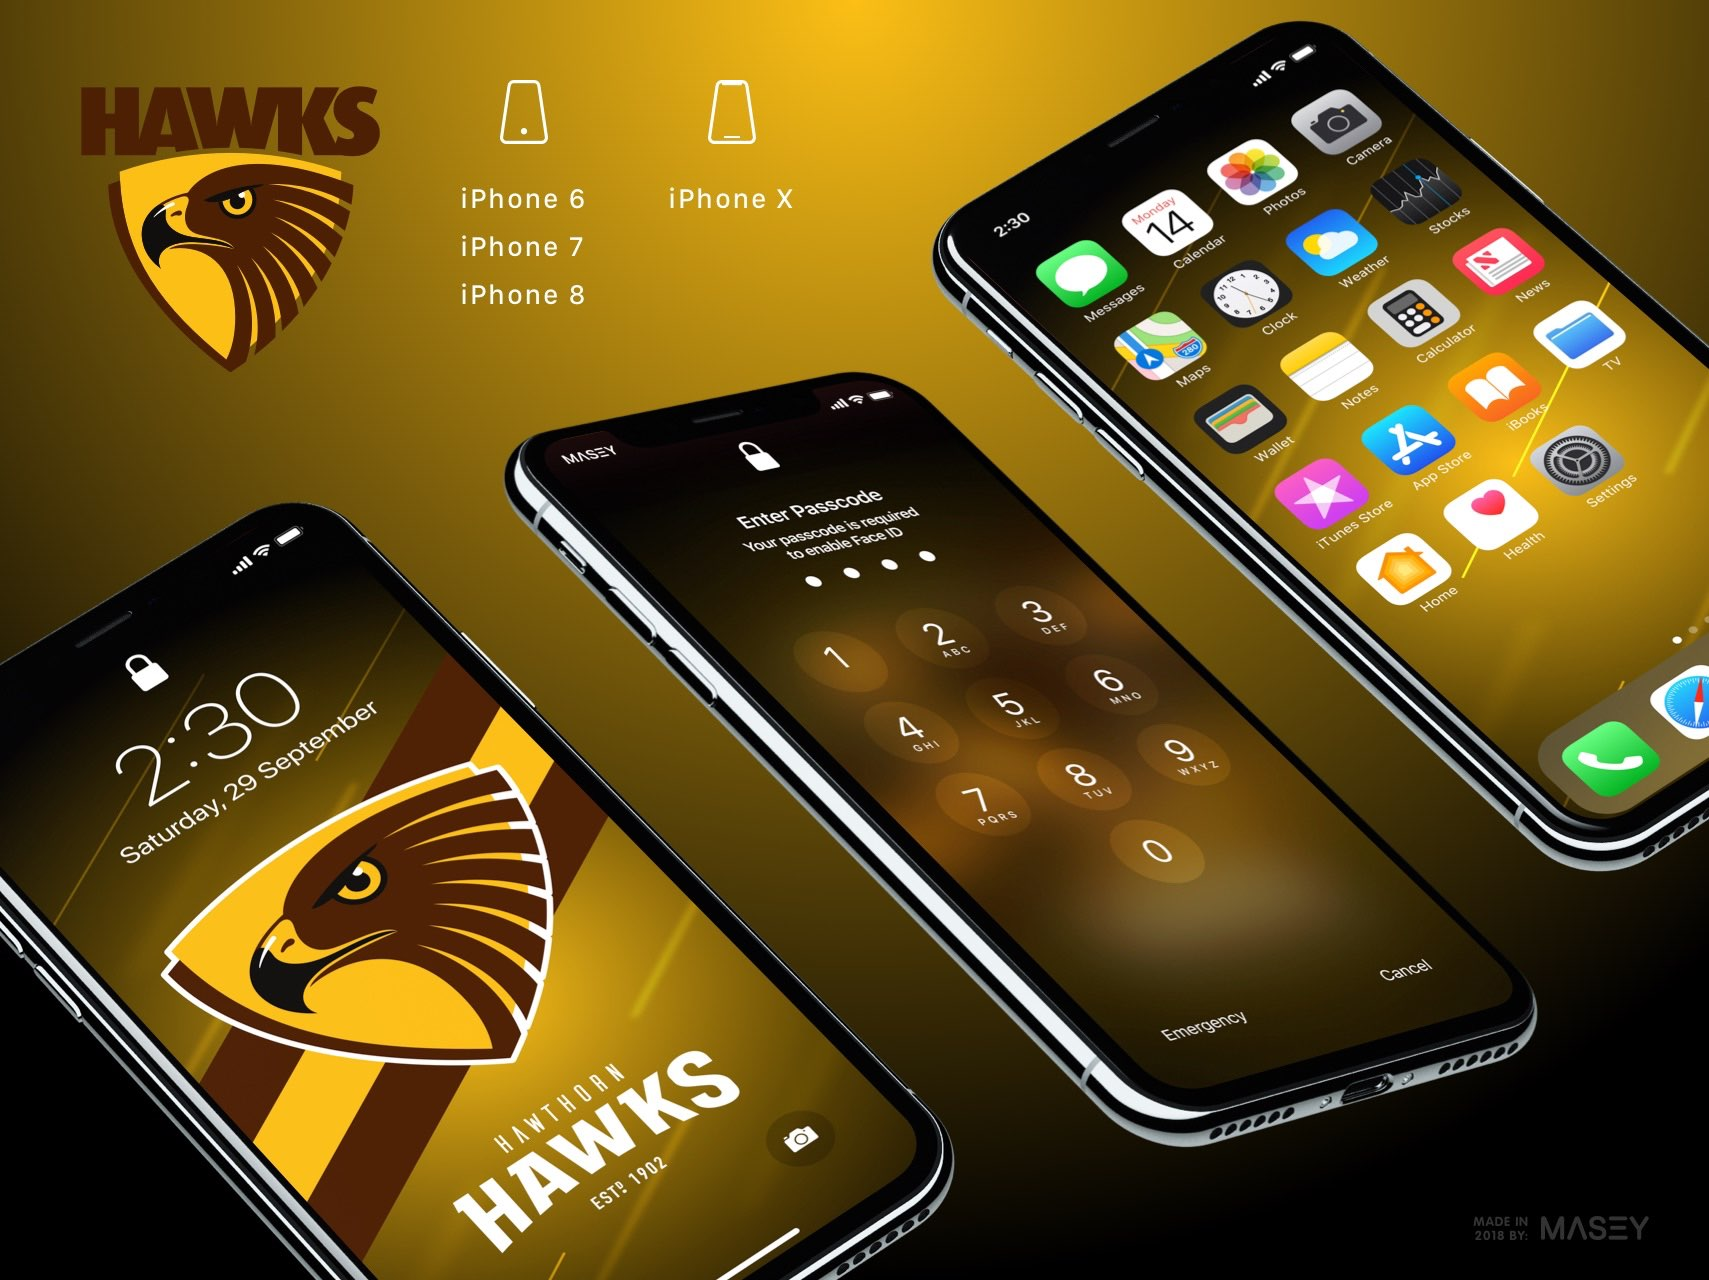 Hawthorn Hawks iPhone Wallpaper